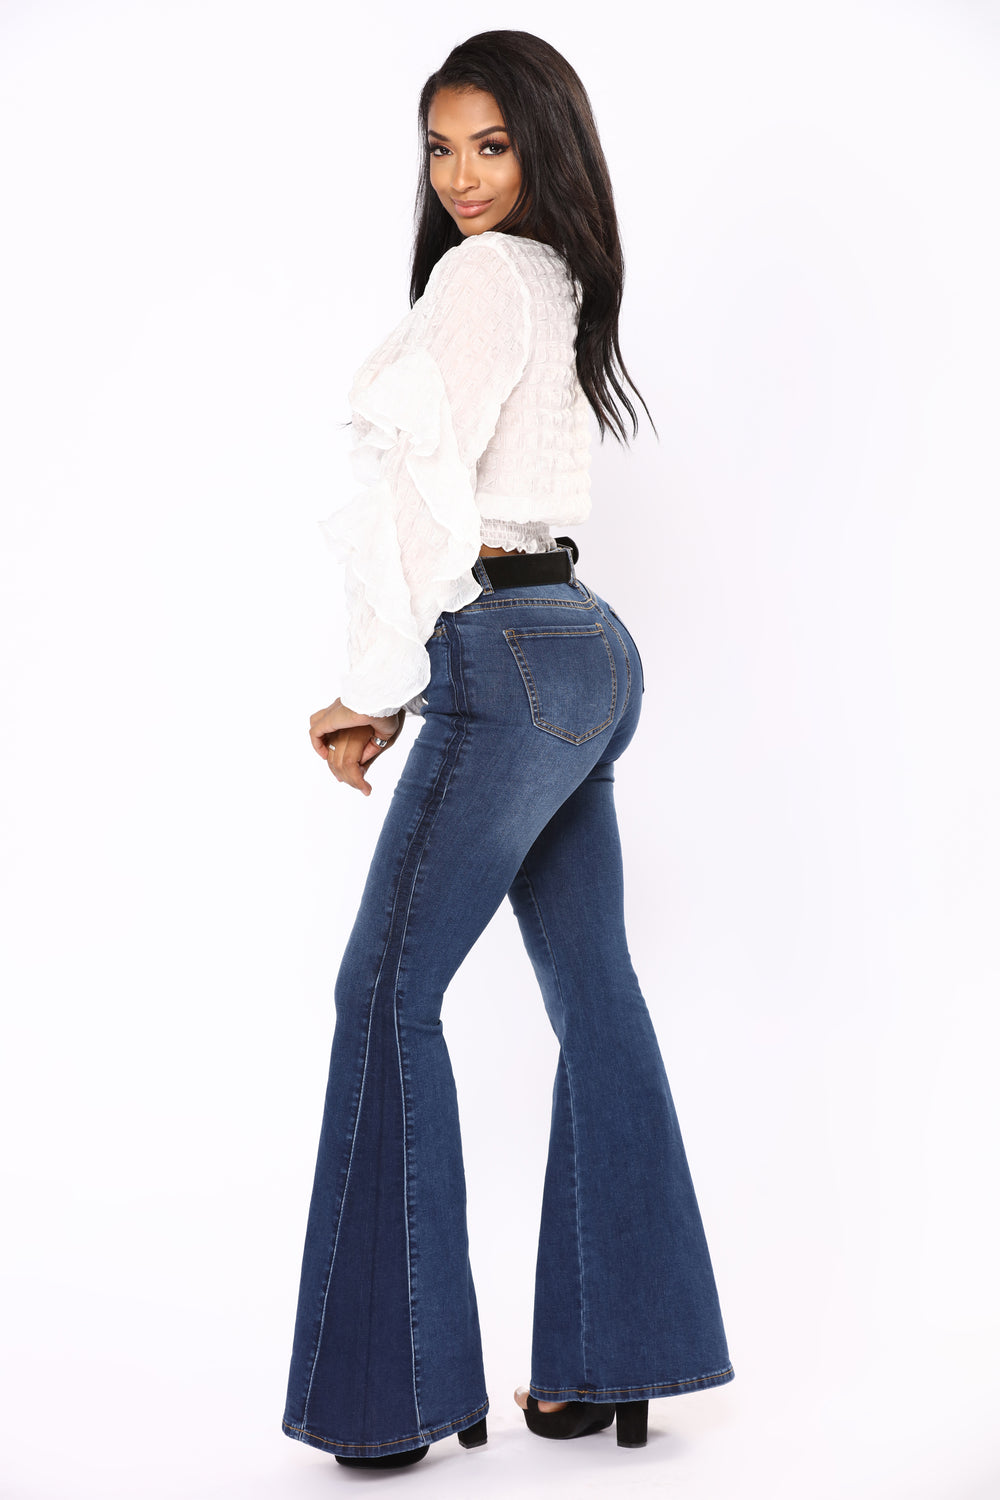 Stay Groovin' Bell Bottom Jeans - Dark Denim